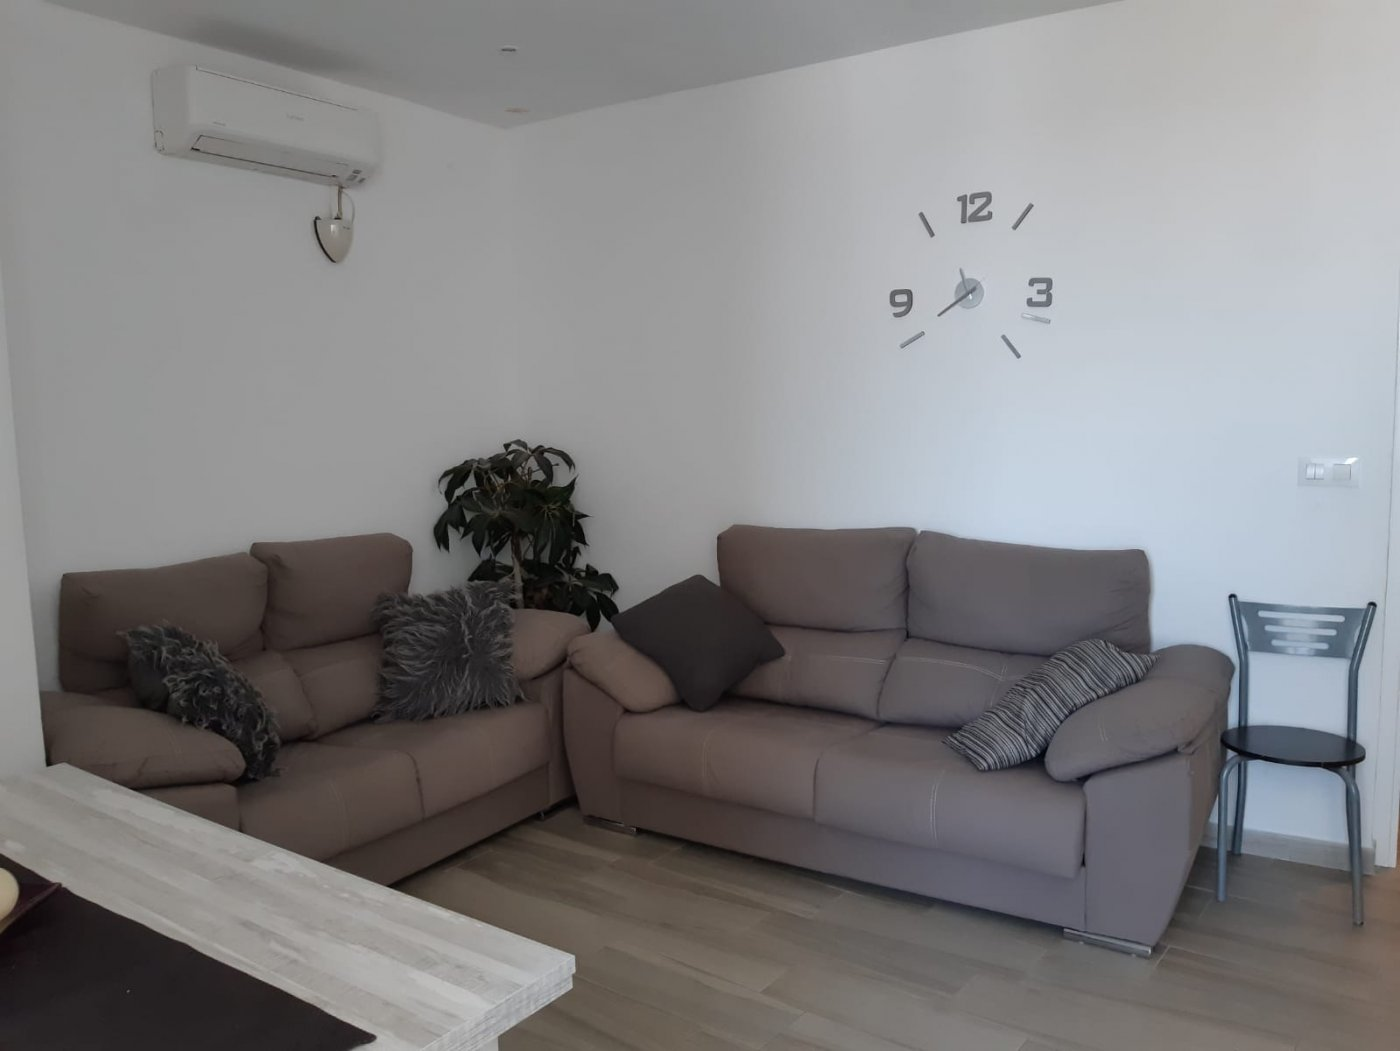 Flat for sale in Alaior, Alaior